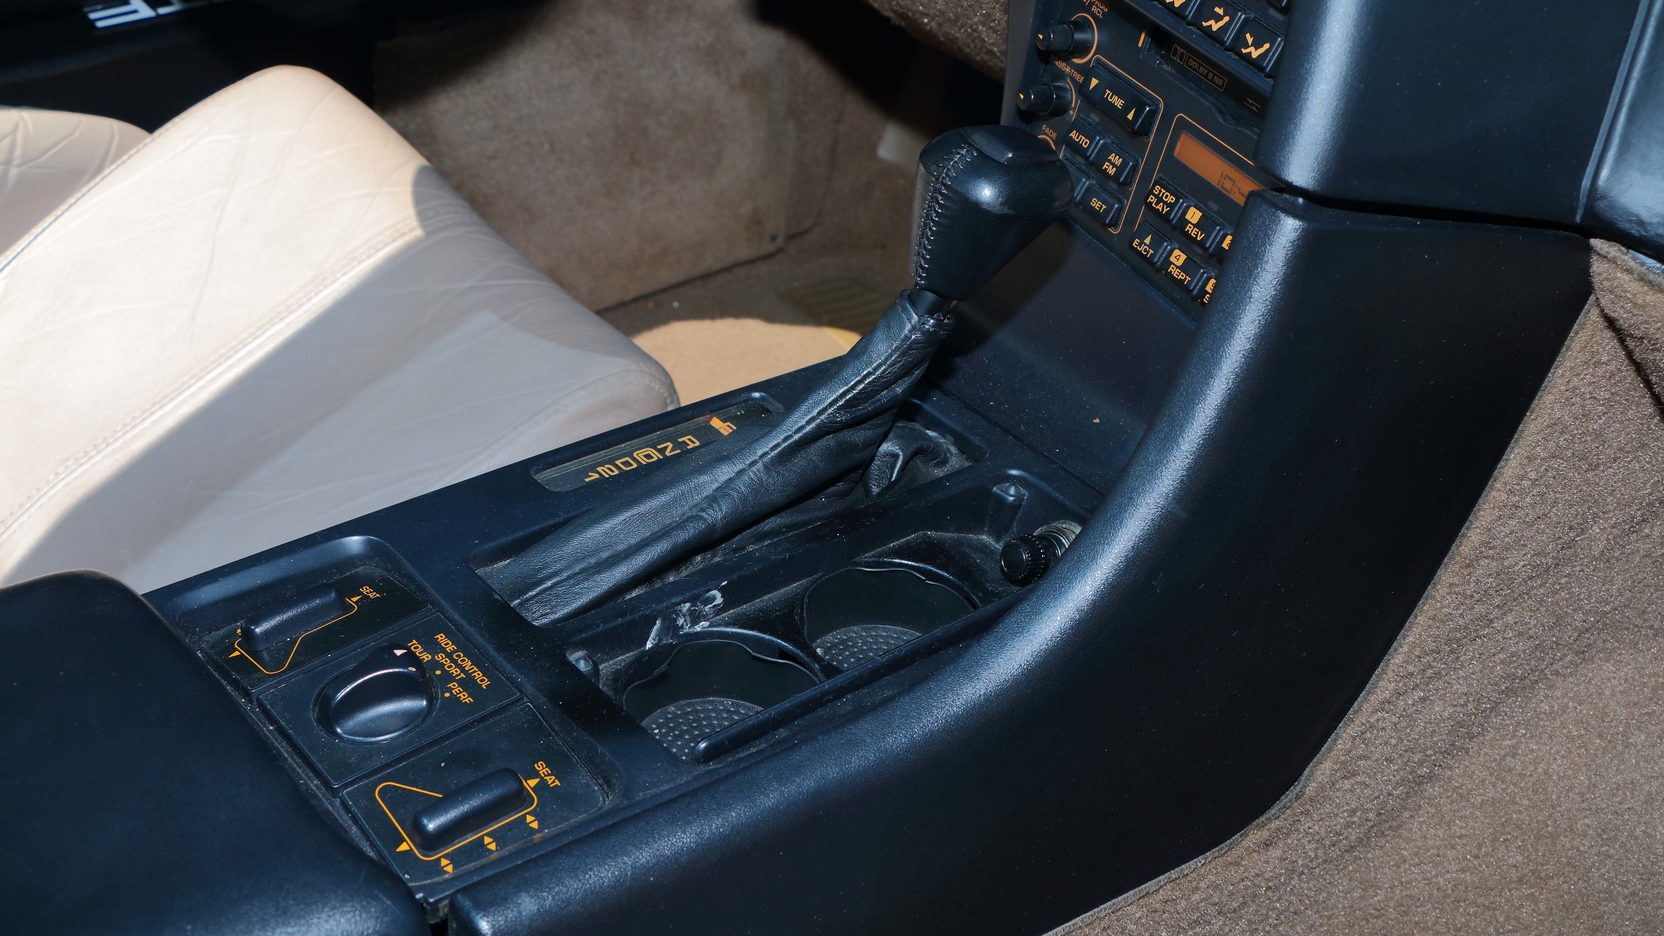 1992 Chevrolet Corvette gear shift